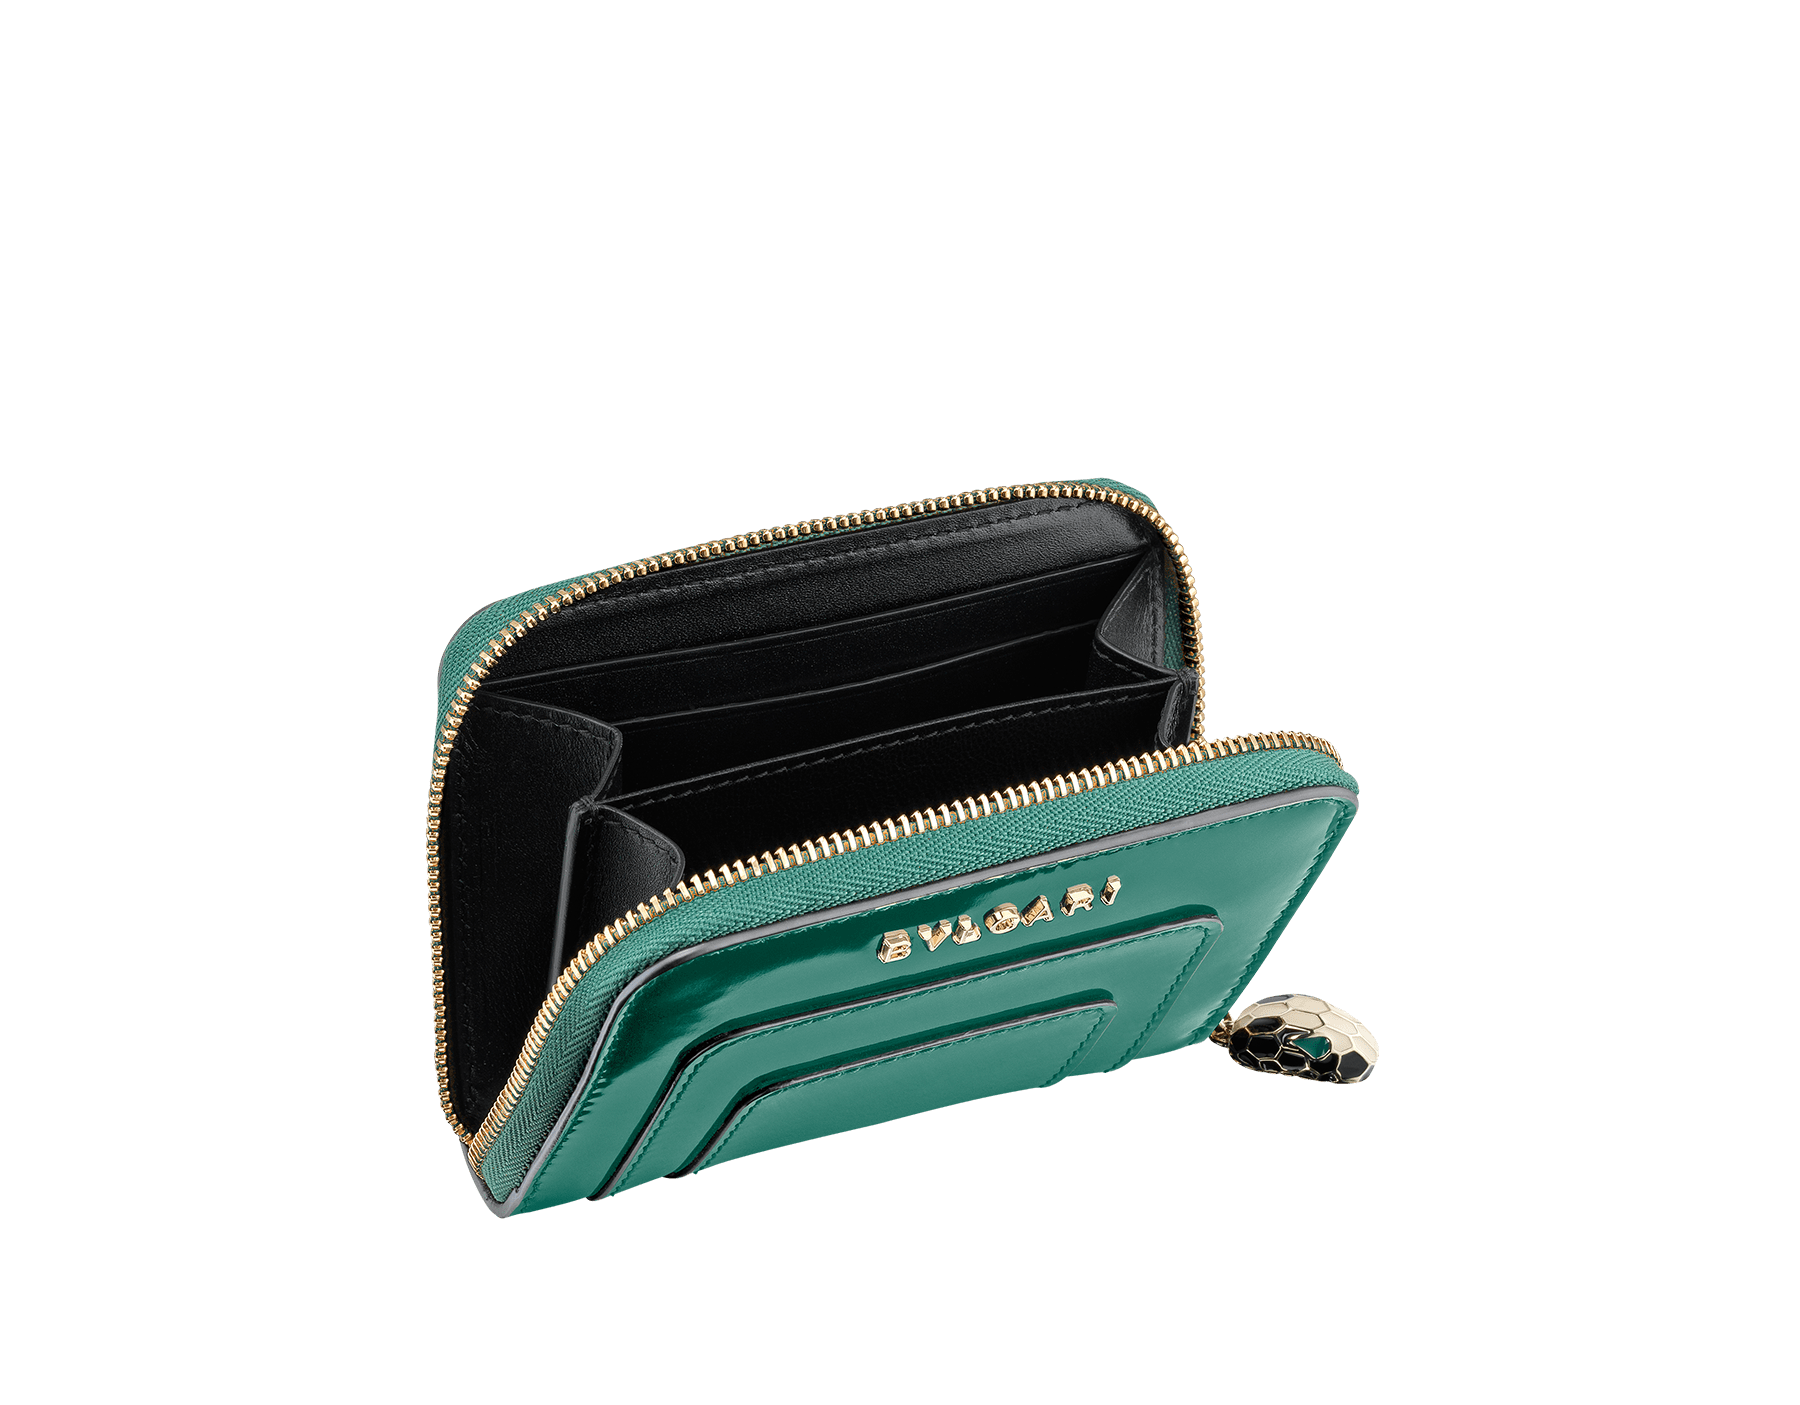 Mini zipped wallet in forest emerald brushed metallic and black calf leather, black nappa lining. Brass light gold plated hardware. Iconic black and white enamel Serpenti head zip puller with green enamel eyes. SEA-WLT-MINI-ZIP-BMCL image 2